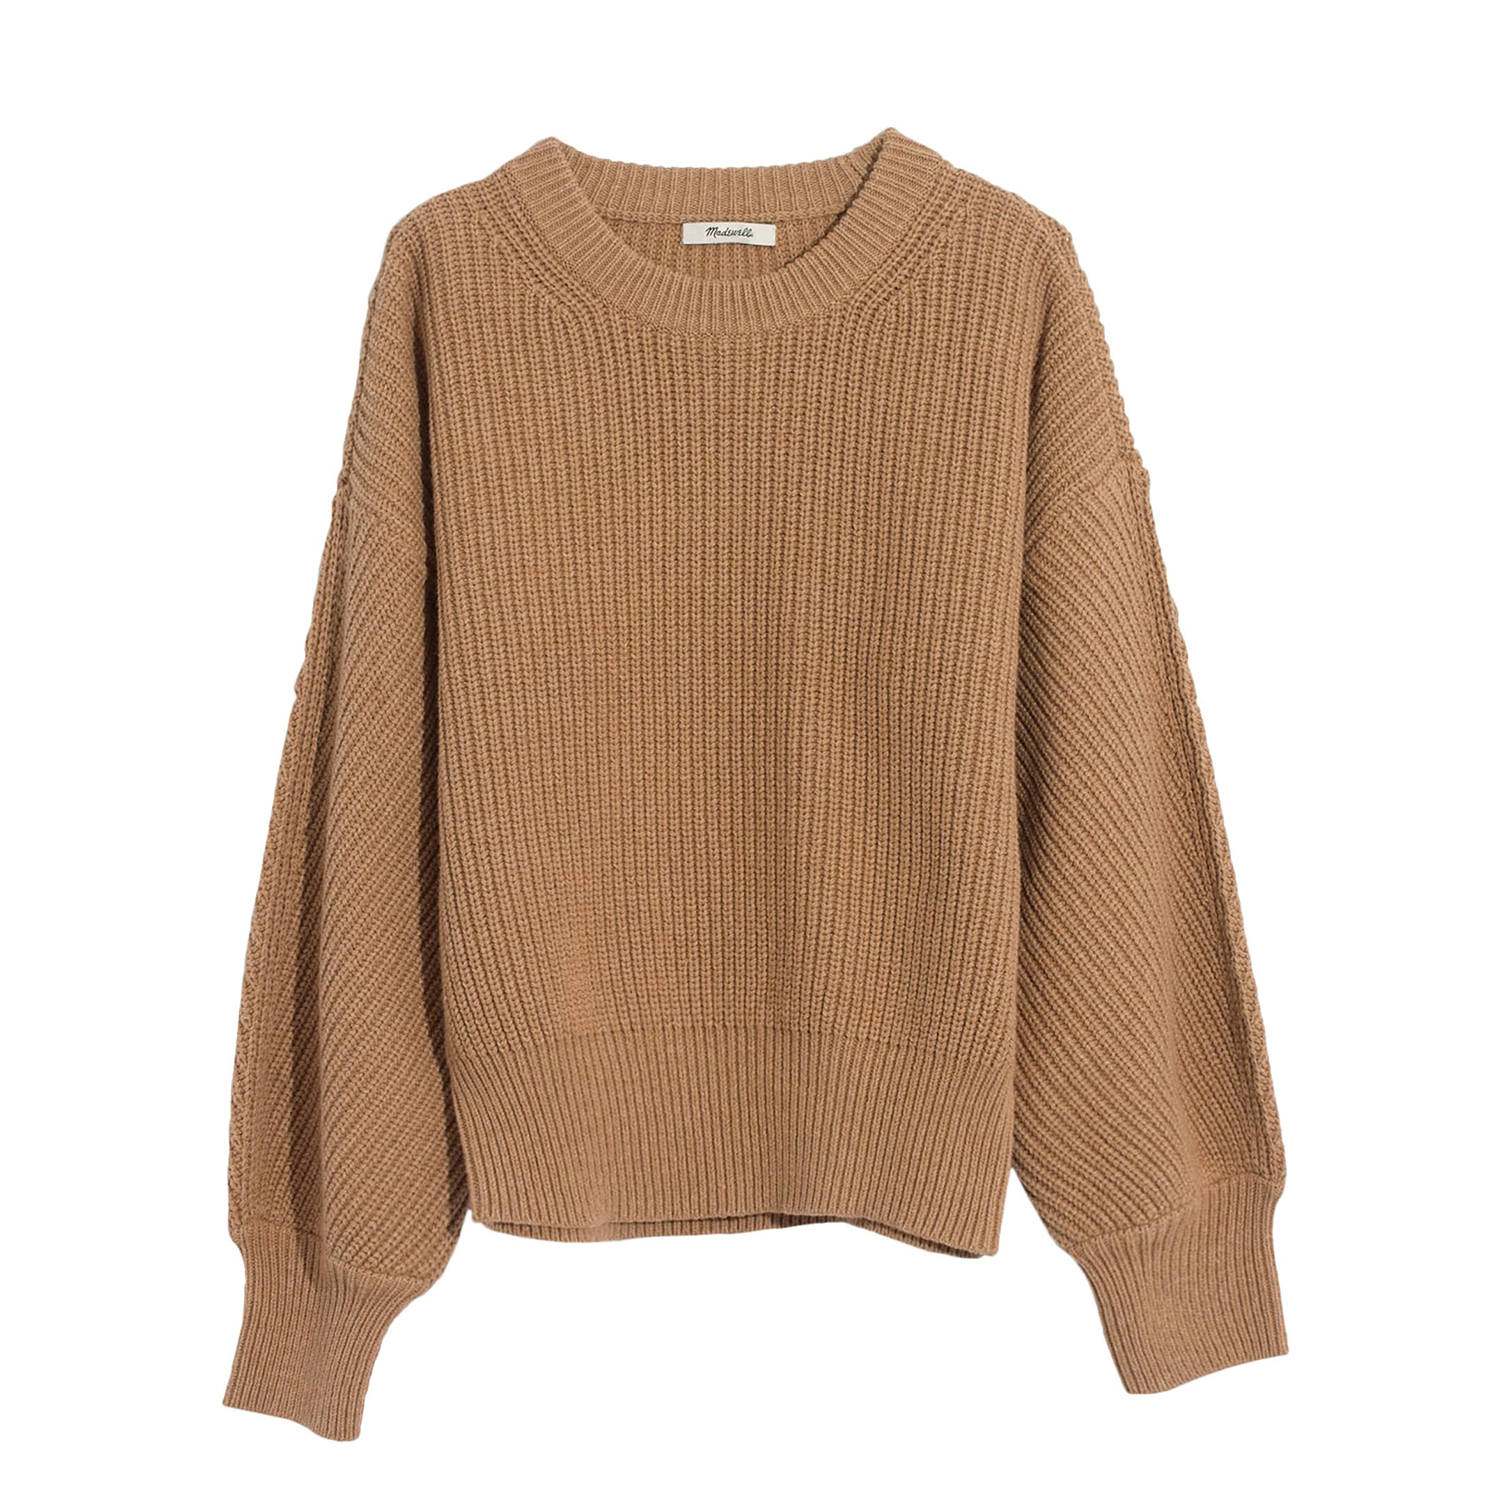 Madewell Fairbanks Pullover Sweater